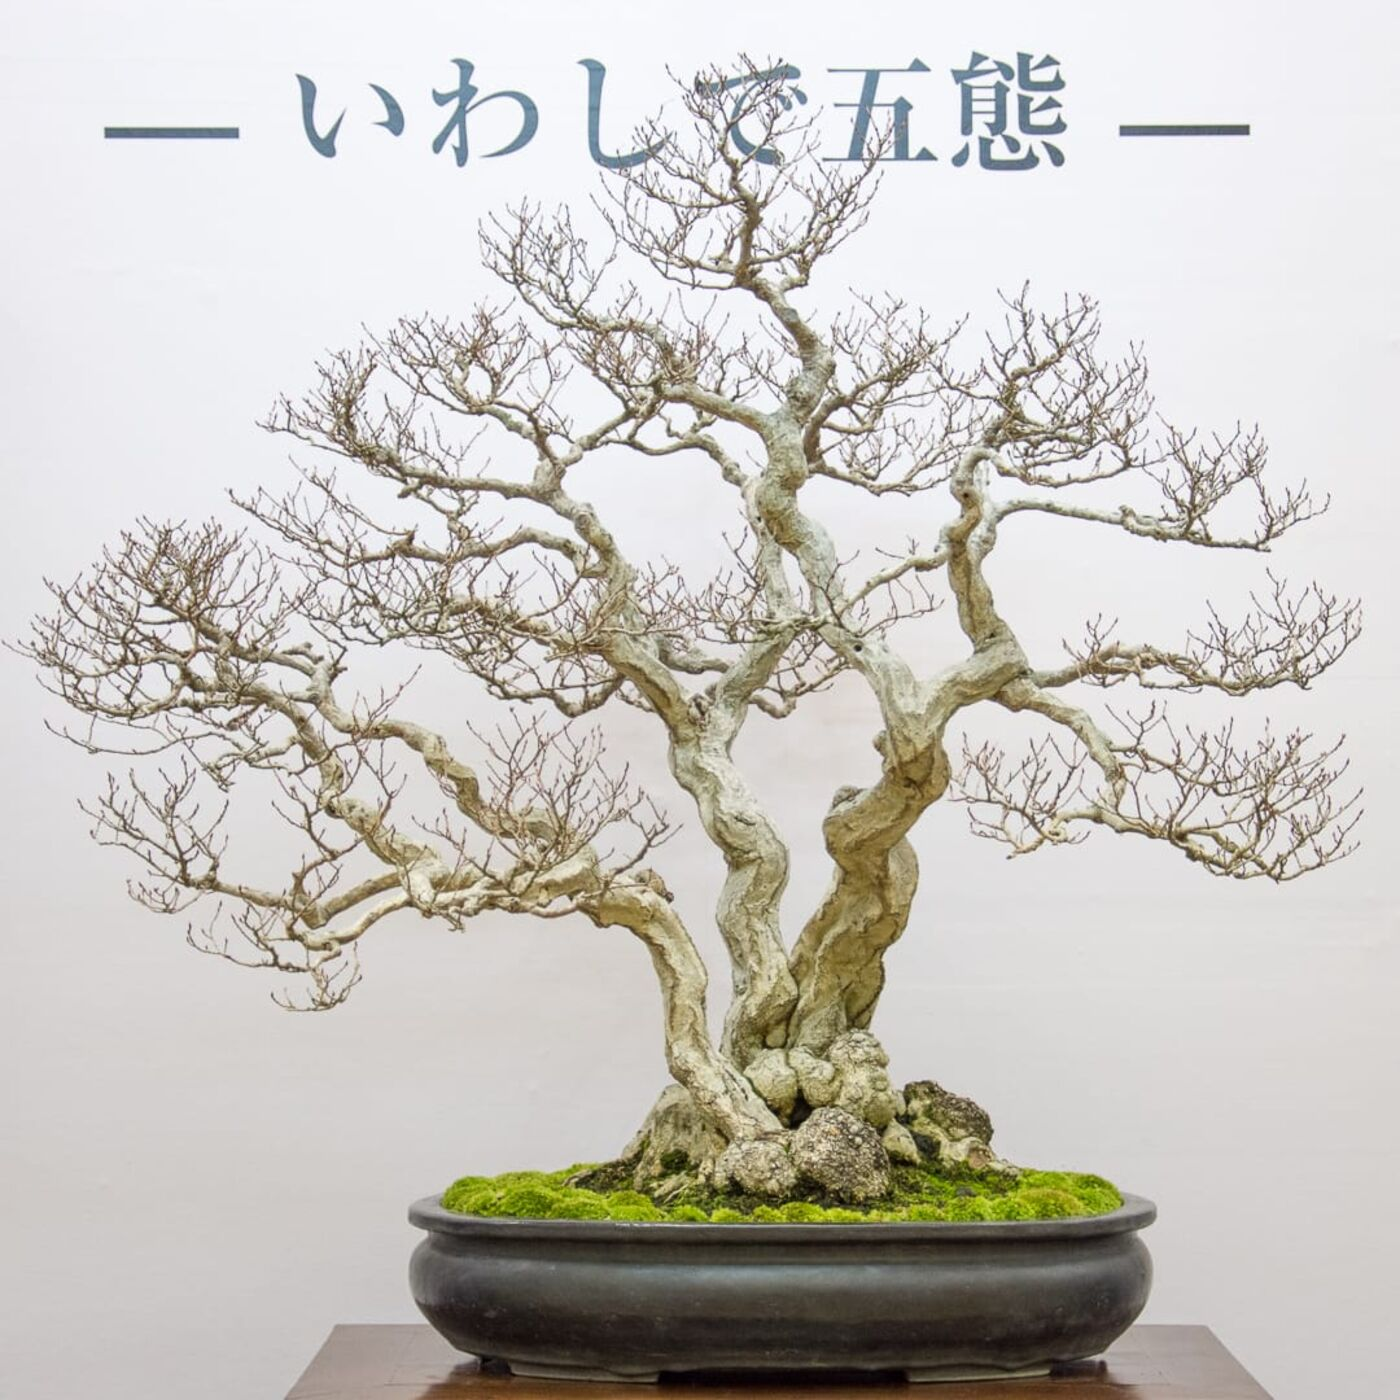 Andrew and Jonas recommend three species for development as bonsai